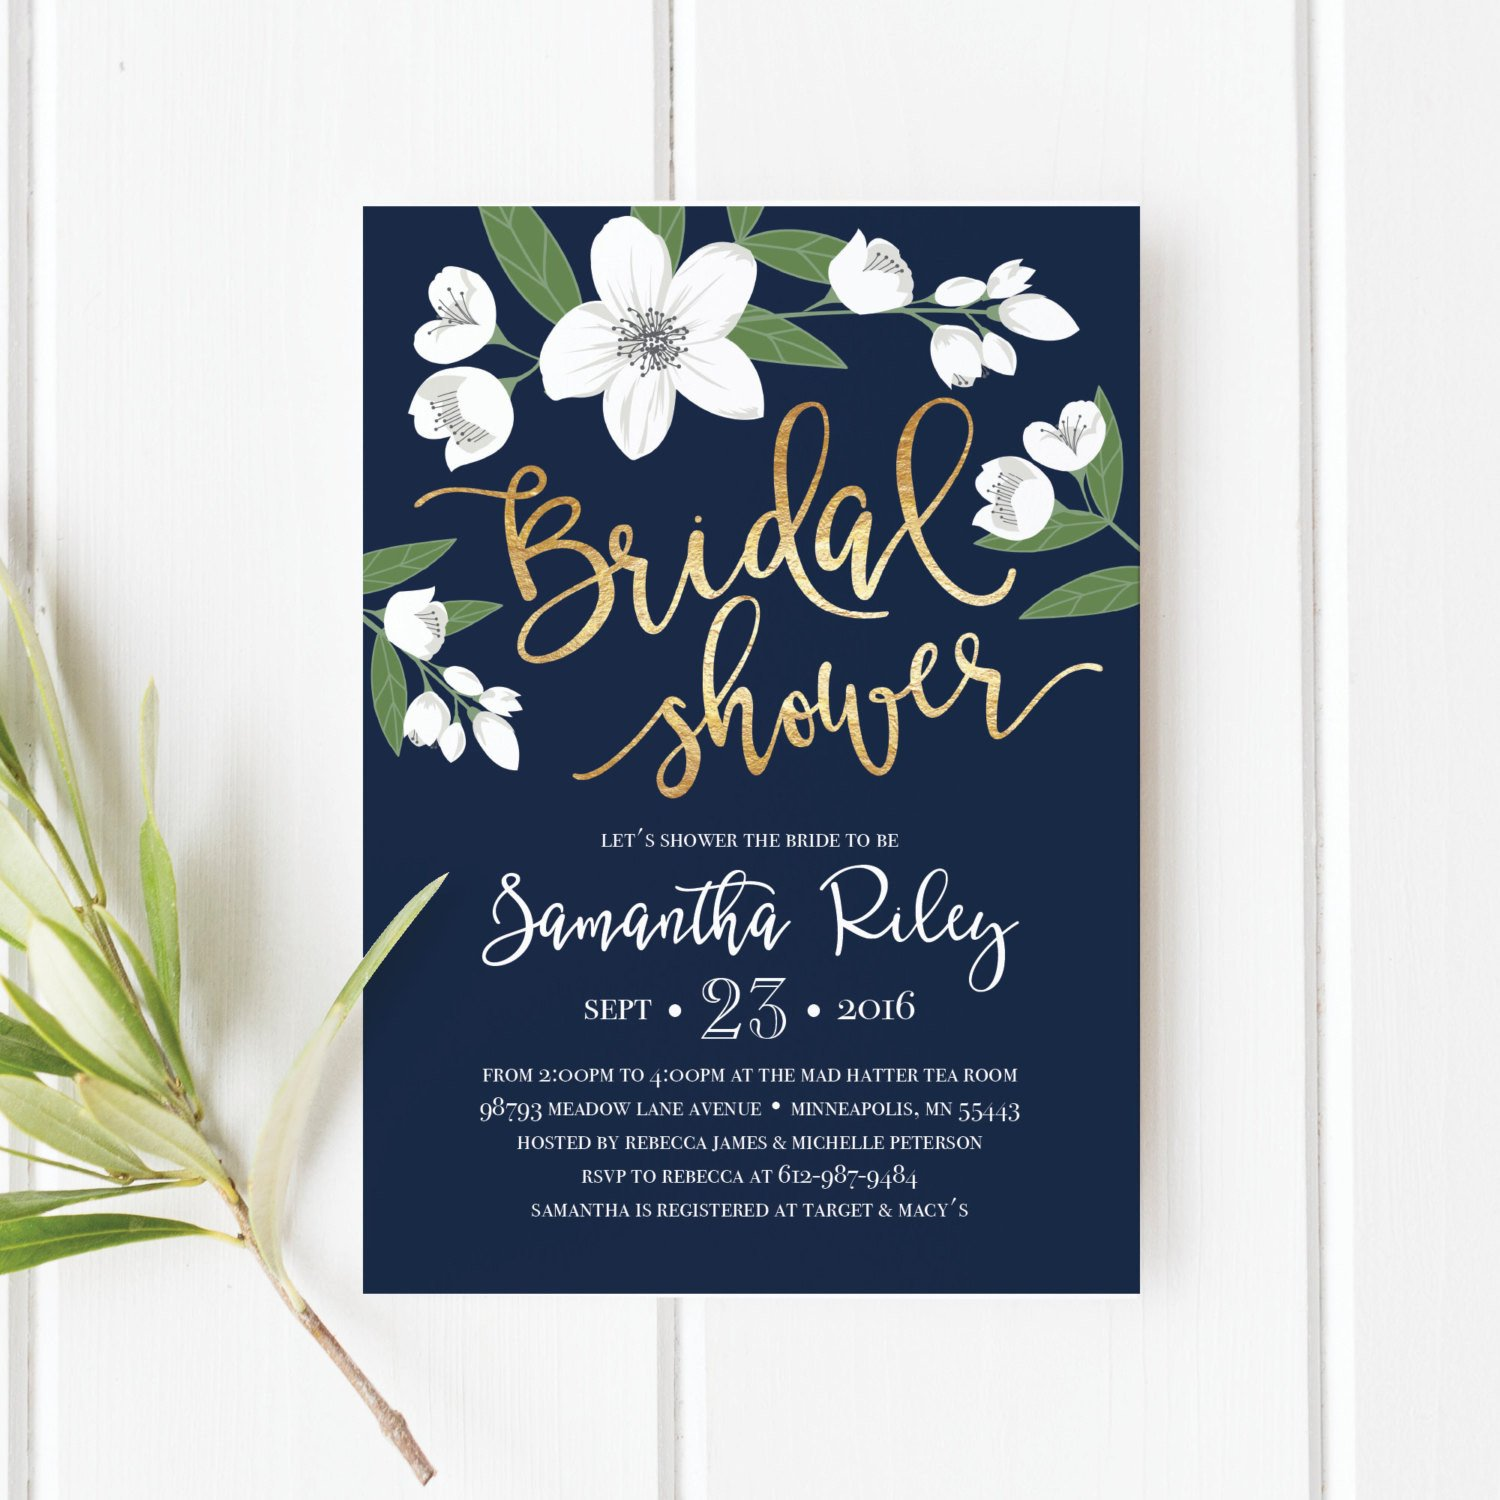 Wedding Shower Invitation Templates Printable Bridal Shower Invitation Template Wedding Shower